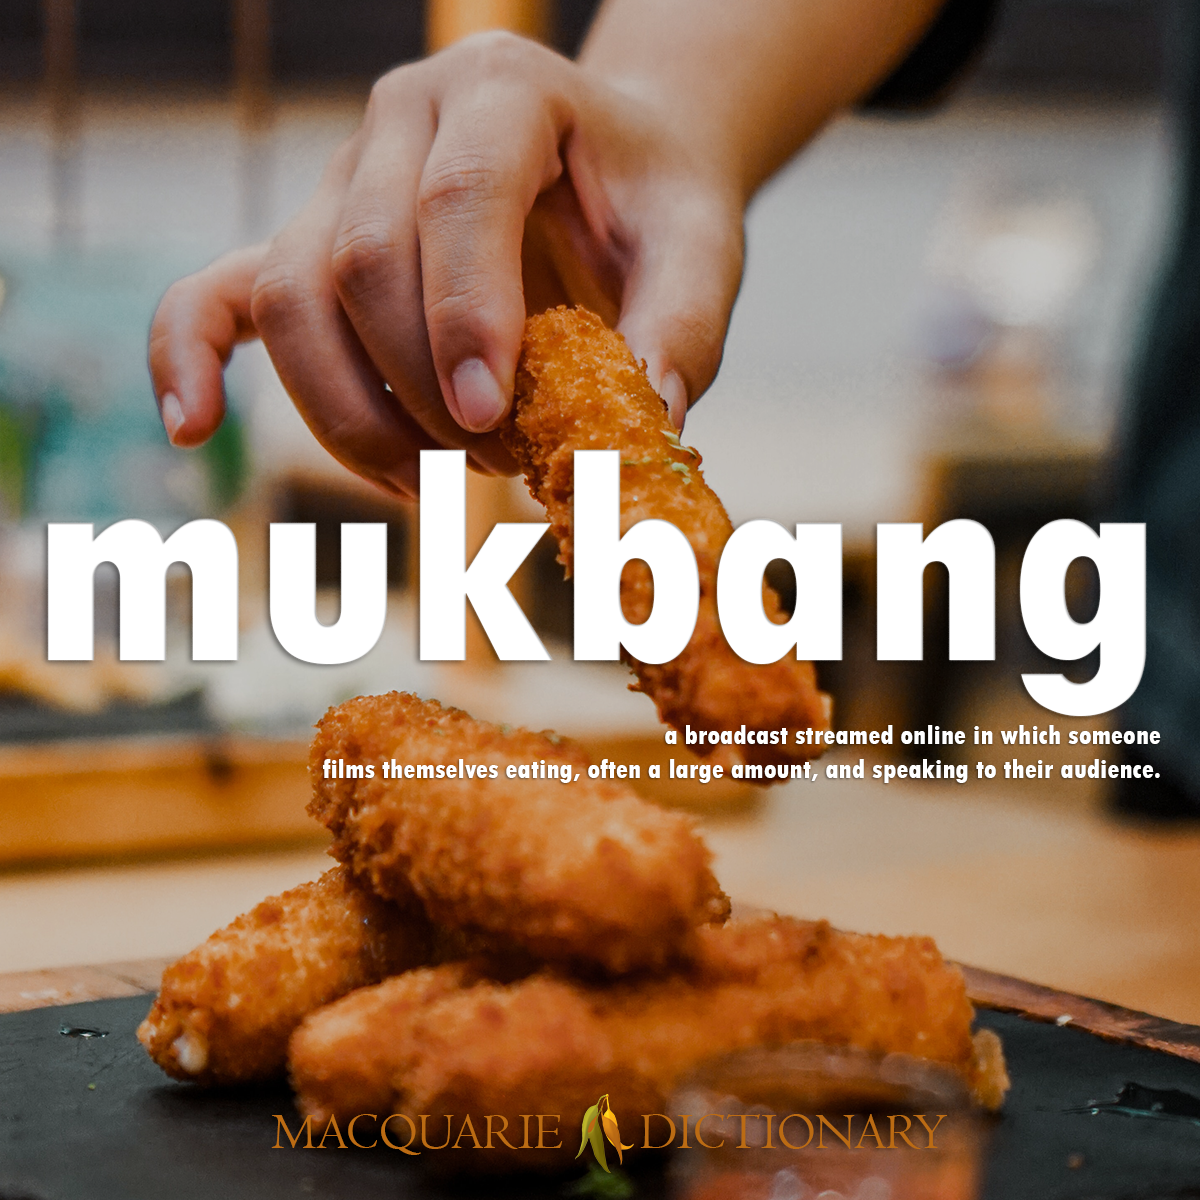 Image of Macquarie Dictionary Word of the Year mukbang a broadcast streamed online in which someone films themselves eating, often a large amount, and speaking to their audience.